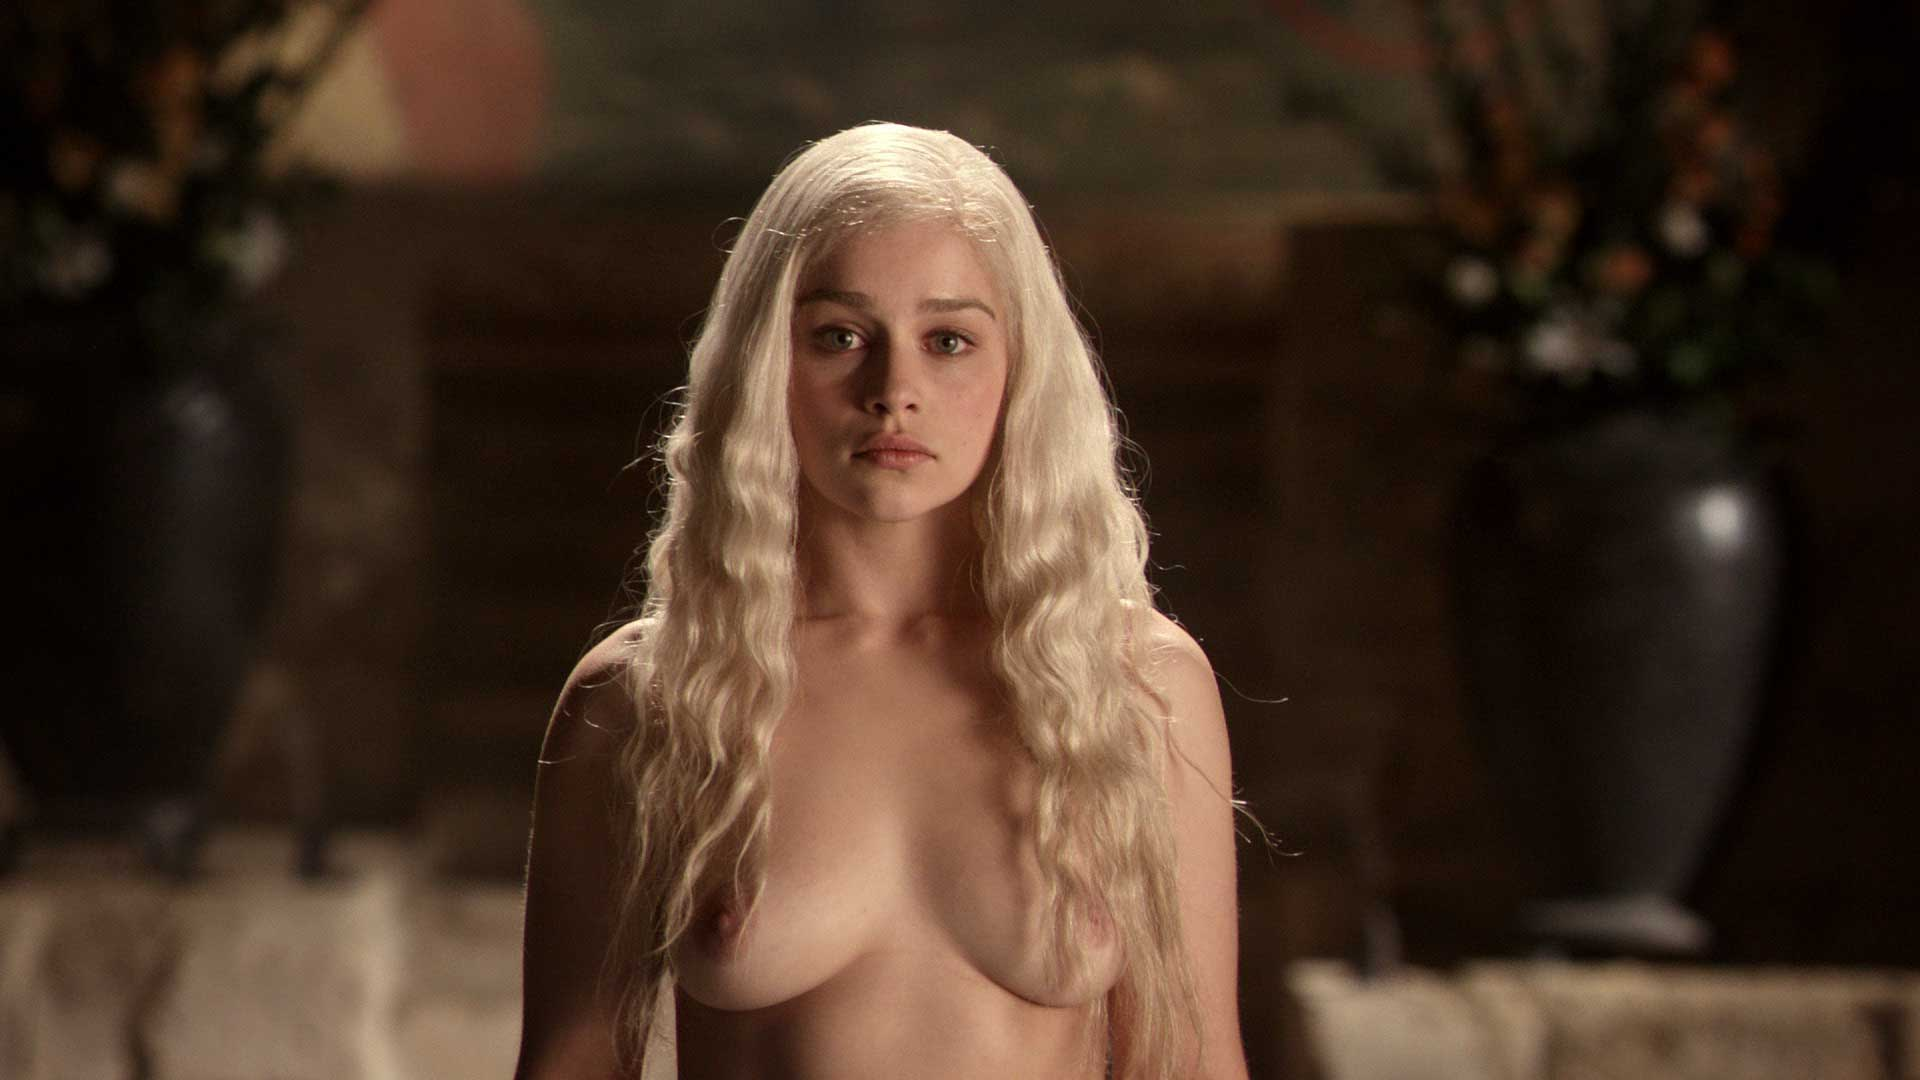 Emilia Clarke naked boobs